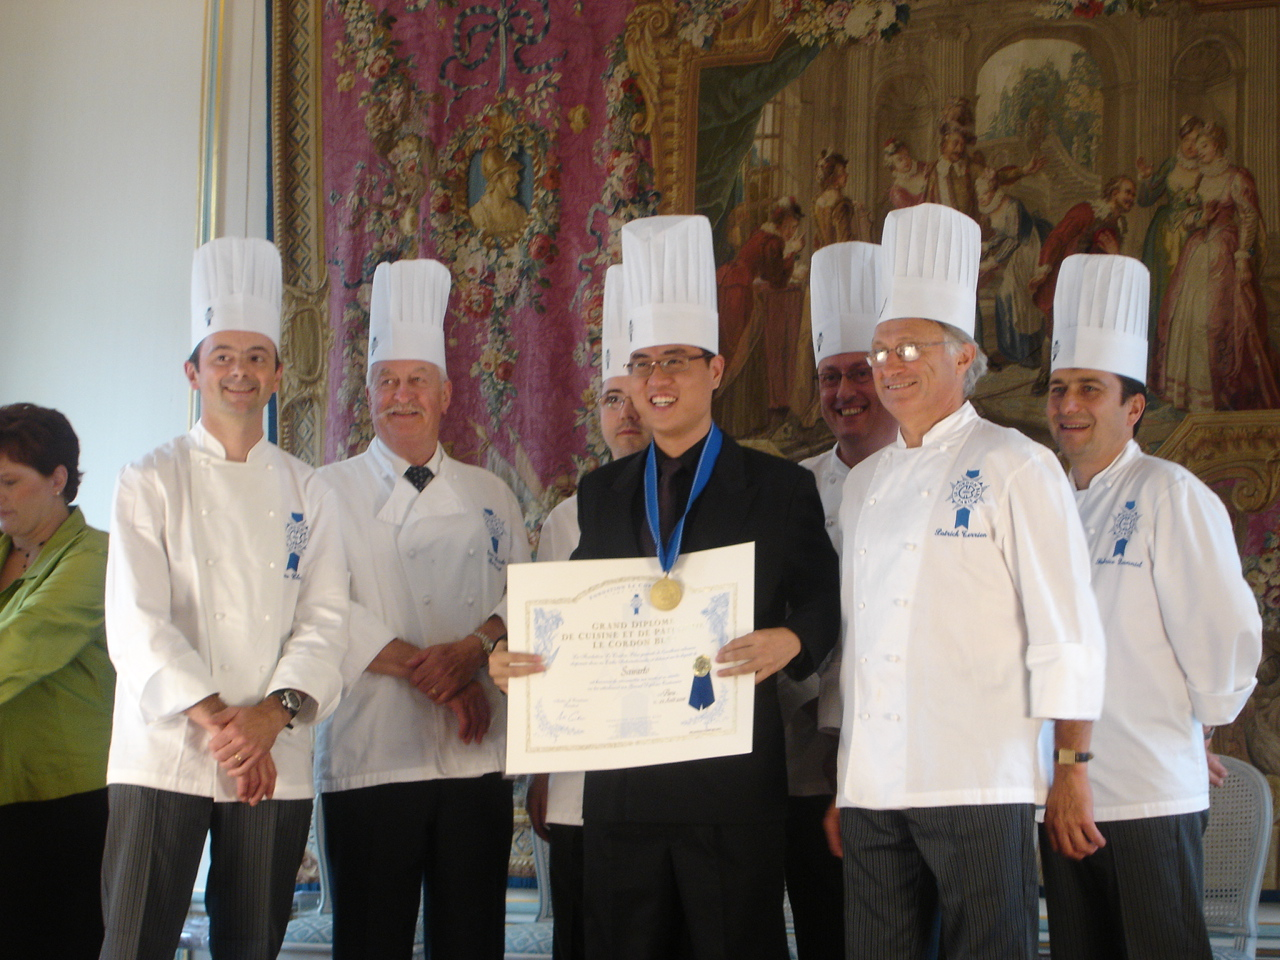 Le Cordon Bleu Paris -Graduation Day